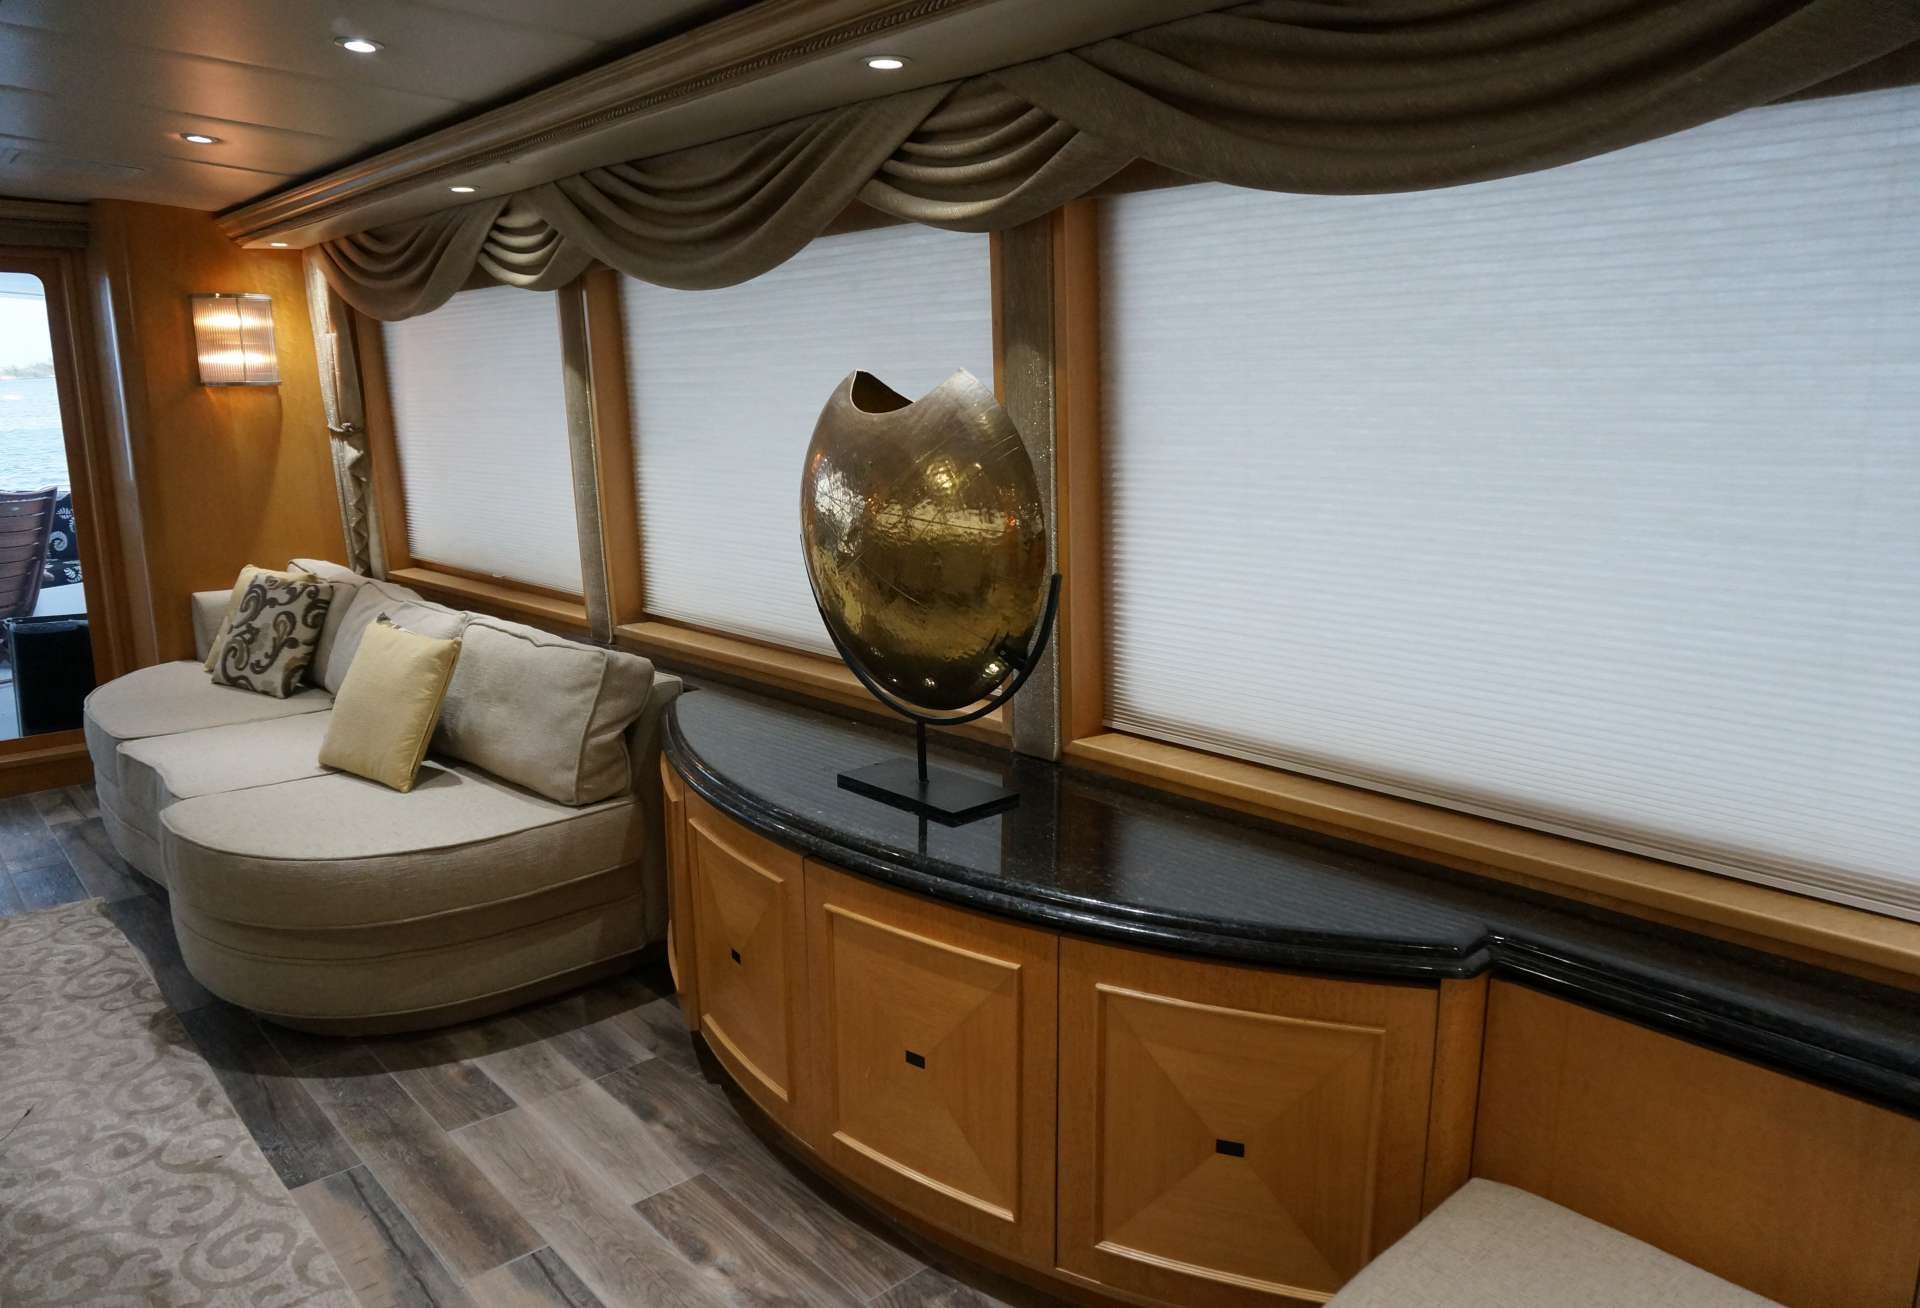 Motor Yacht 'LADY SHARON GALE' Salon, 10 PAX, 4 Crew, 112.00 Ft, 34.00 Meters, Built 1998, Broward, Refit Year 2018